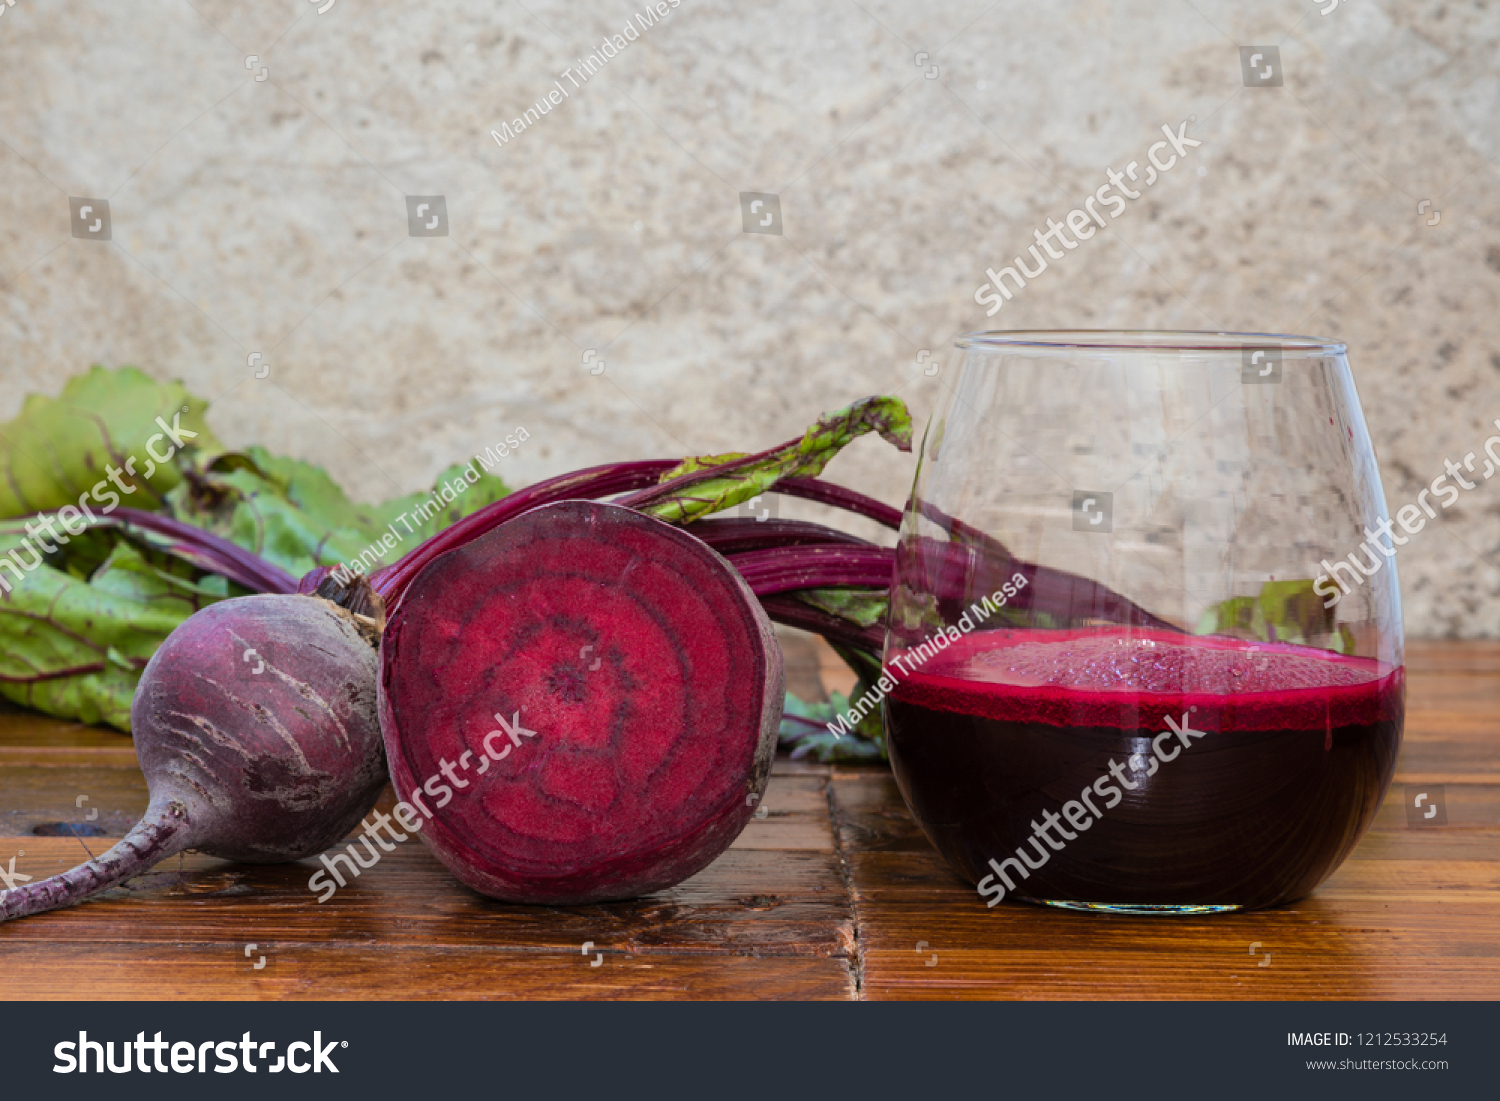 Beet juice in glass